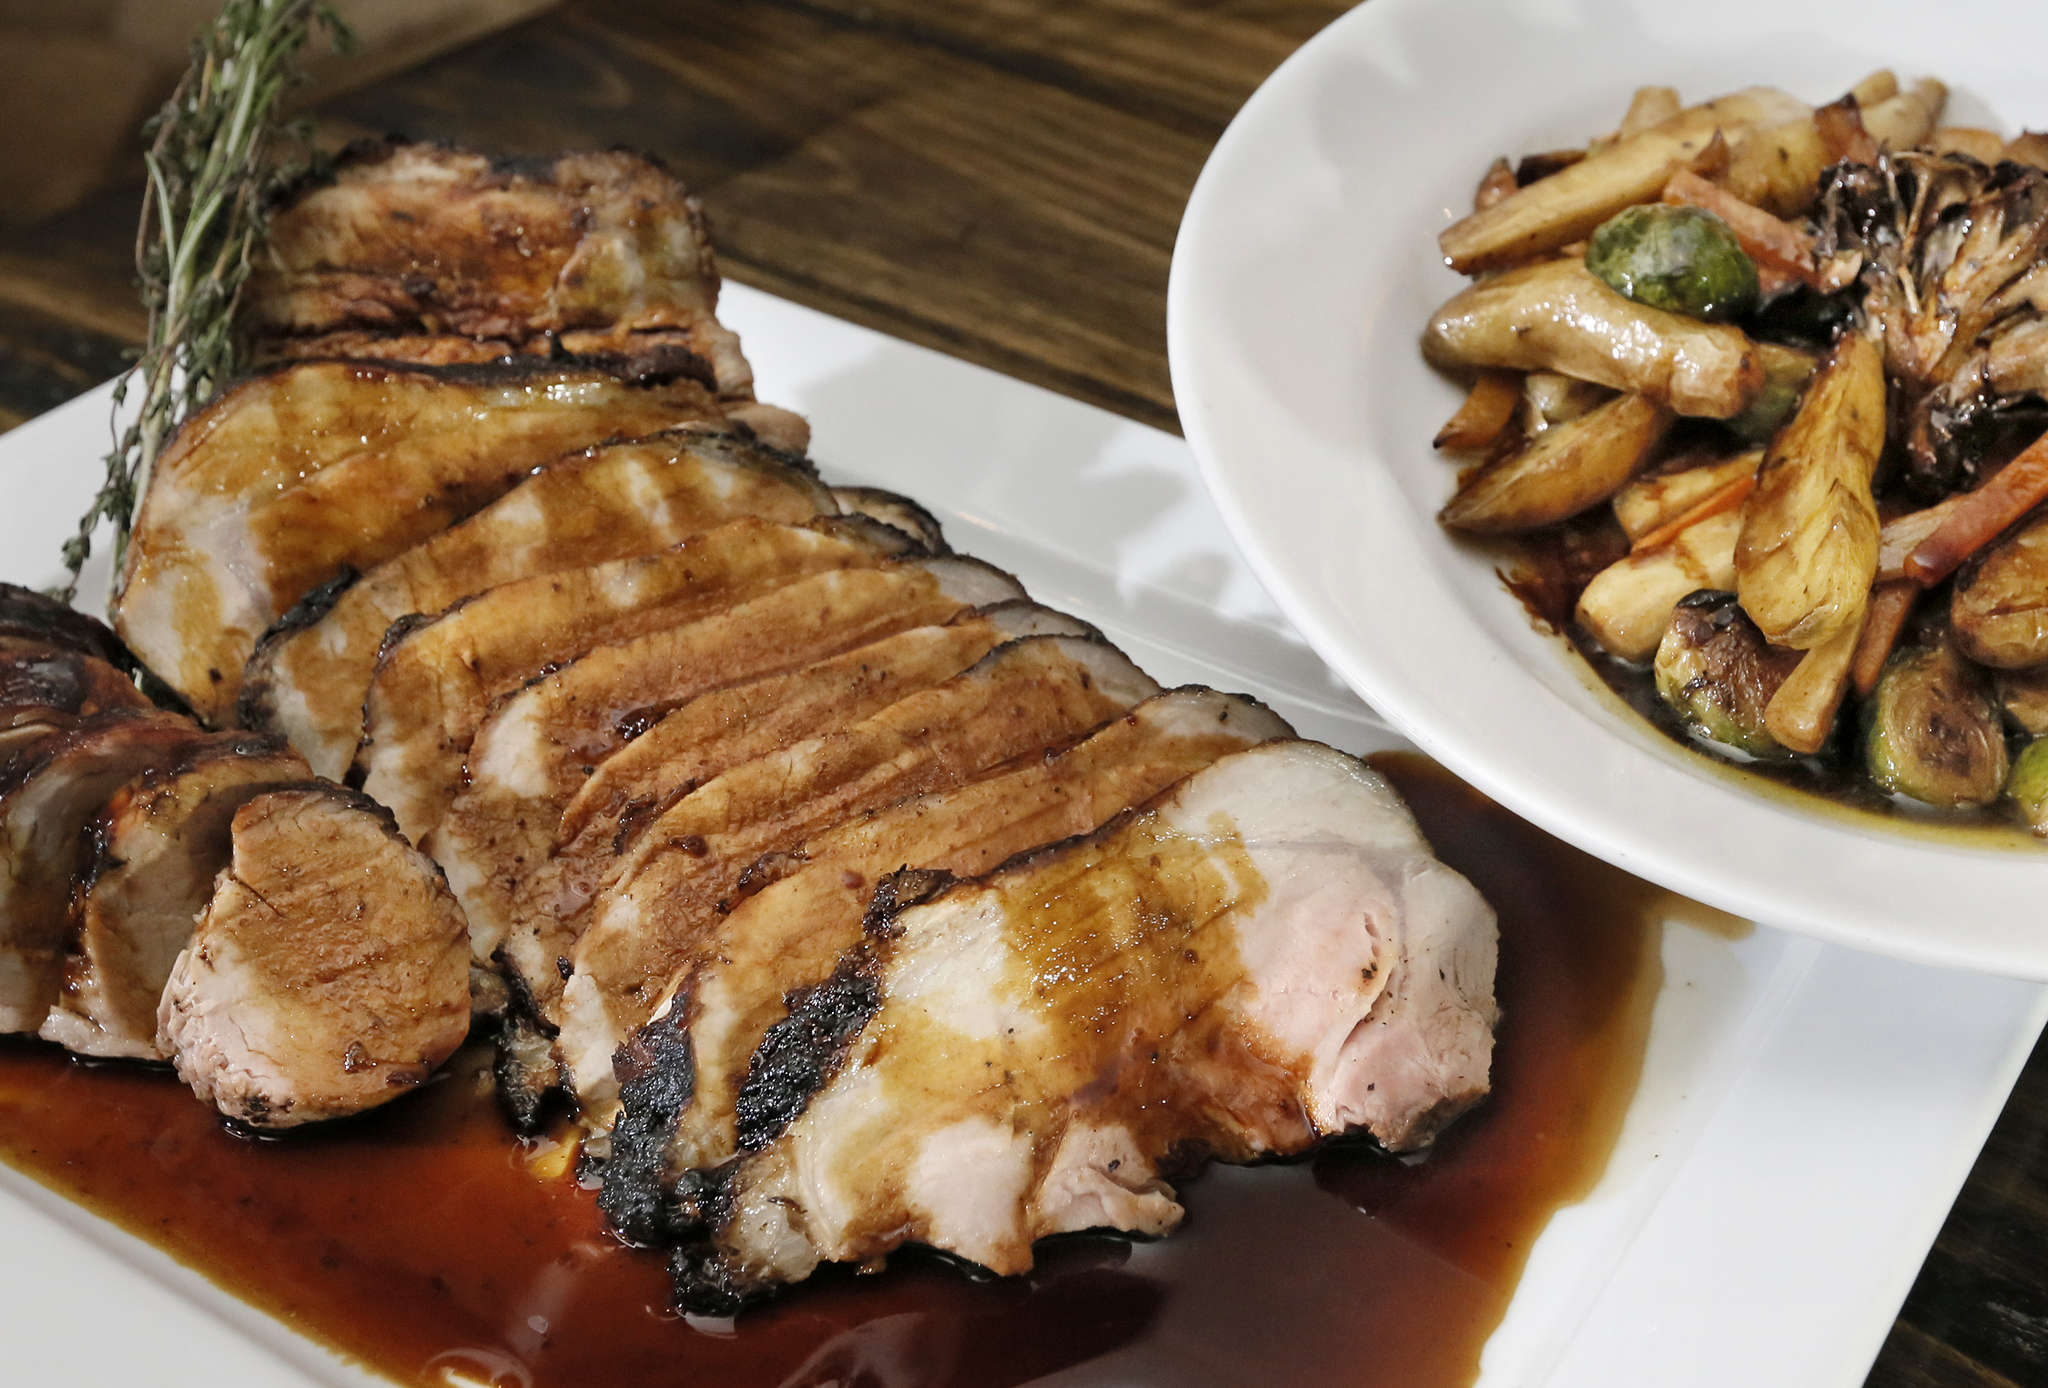 The 40-ounce pork porterhouse for two at South, 600 N. Broad St.